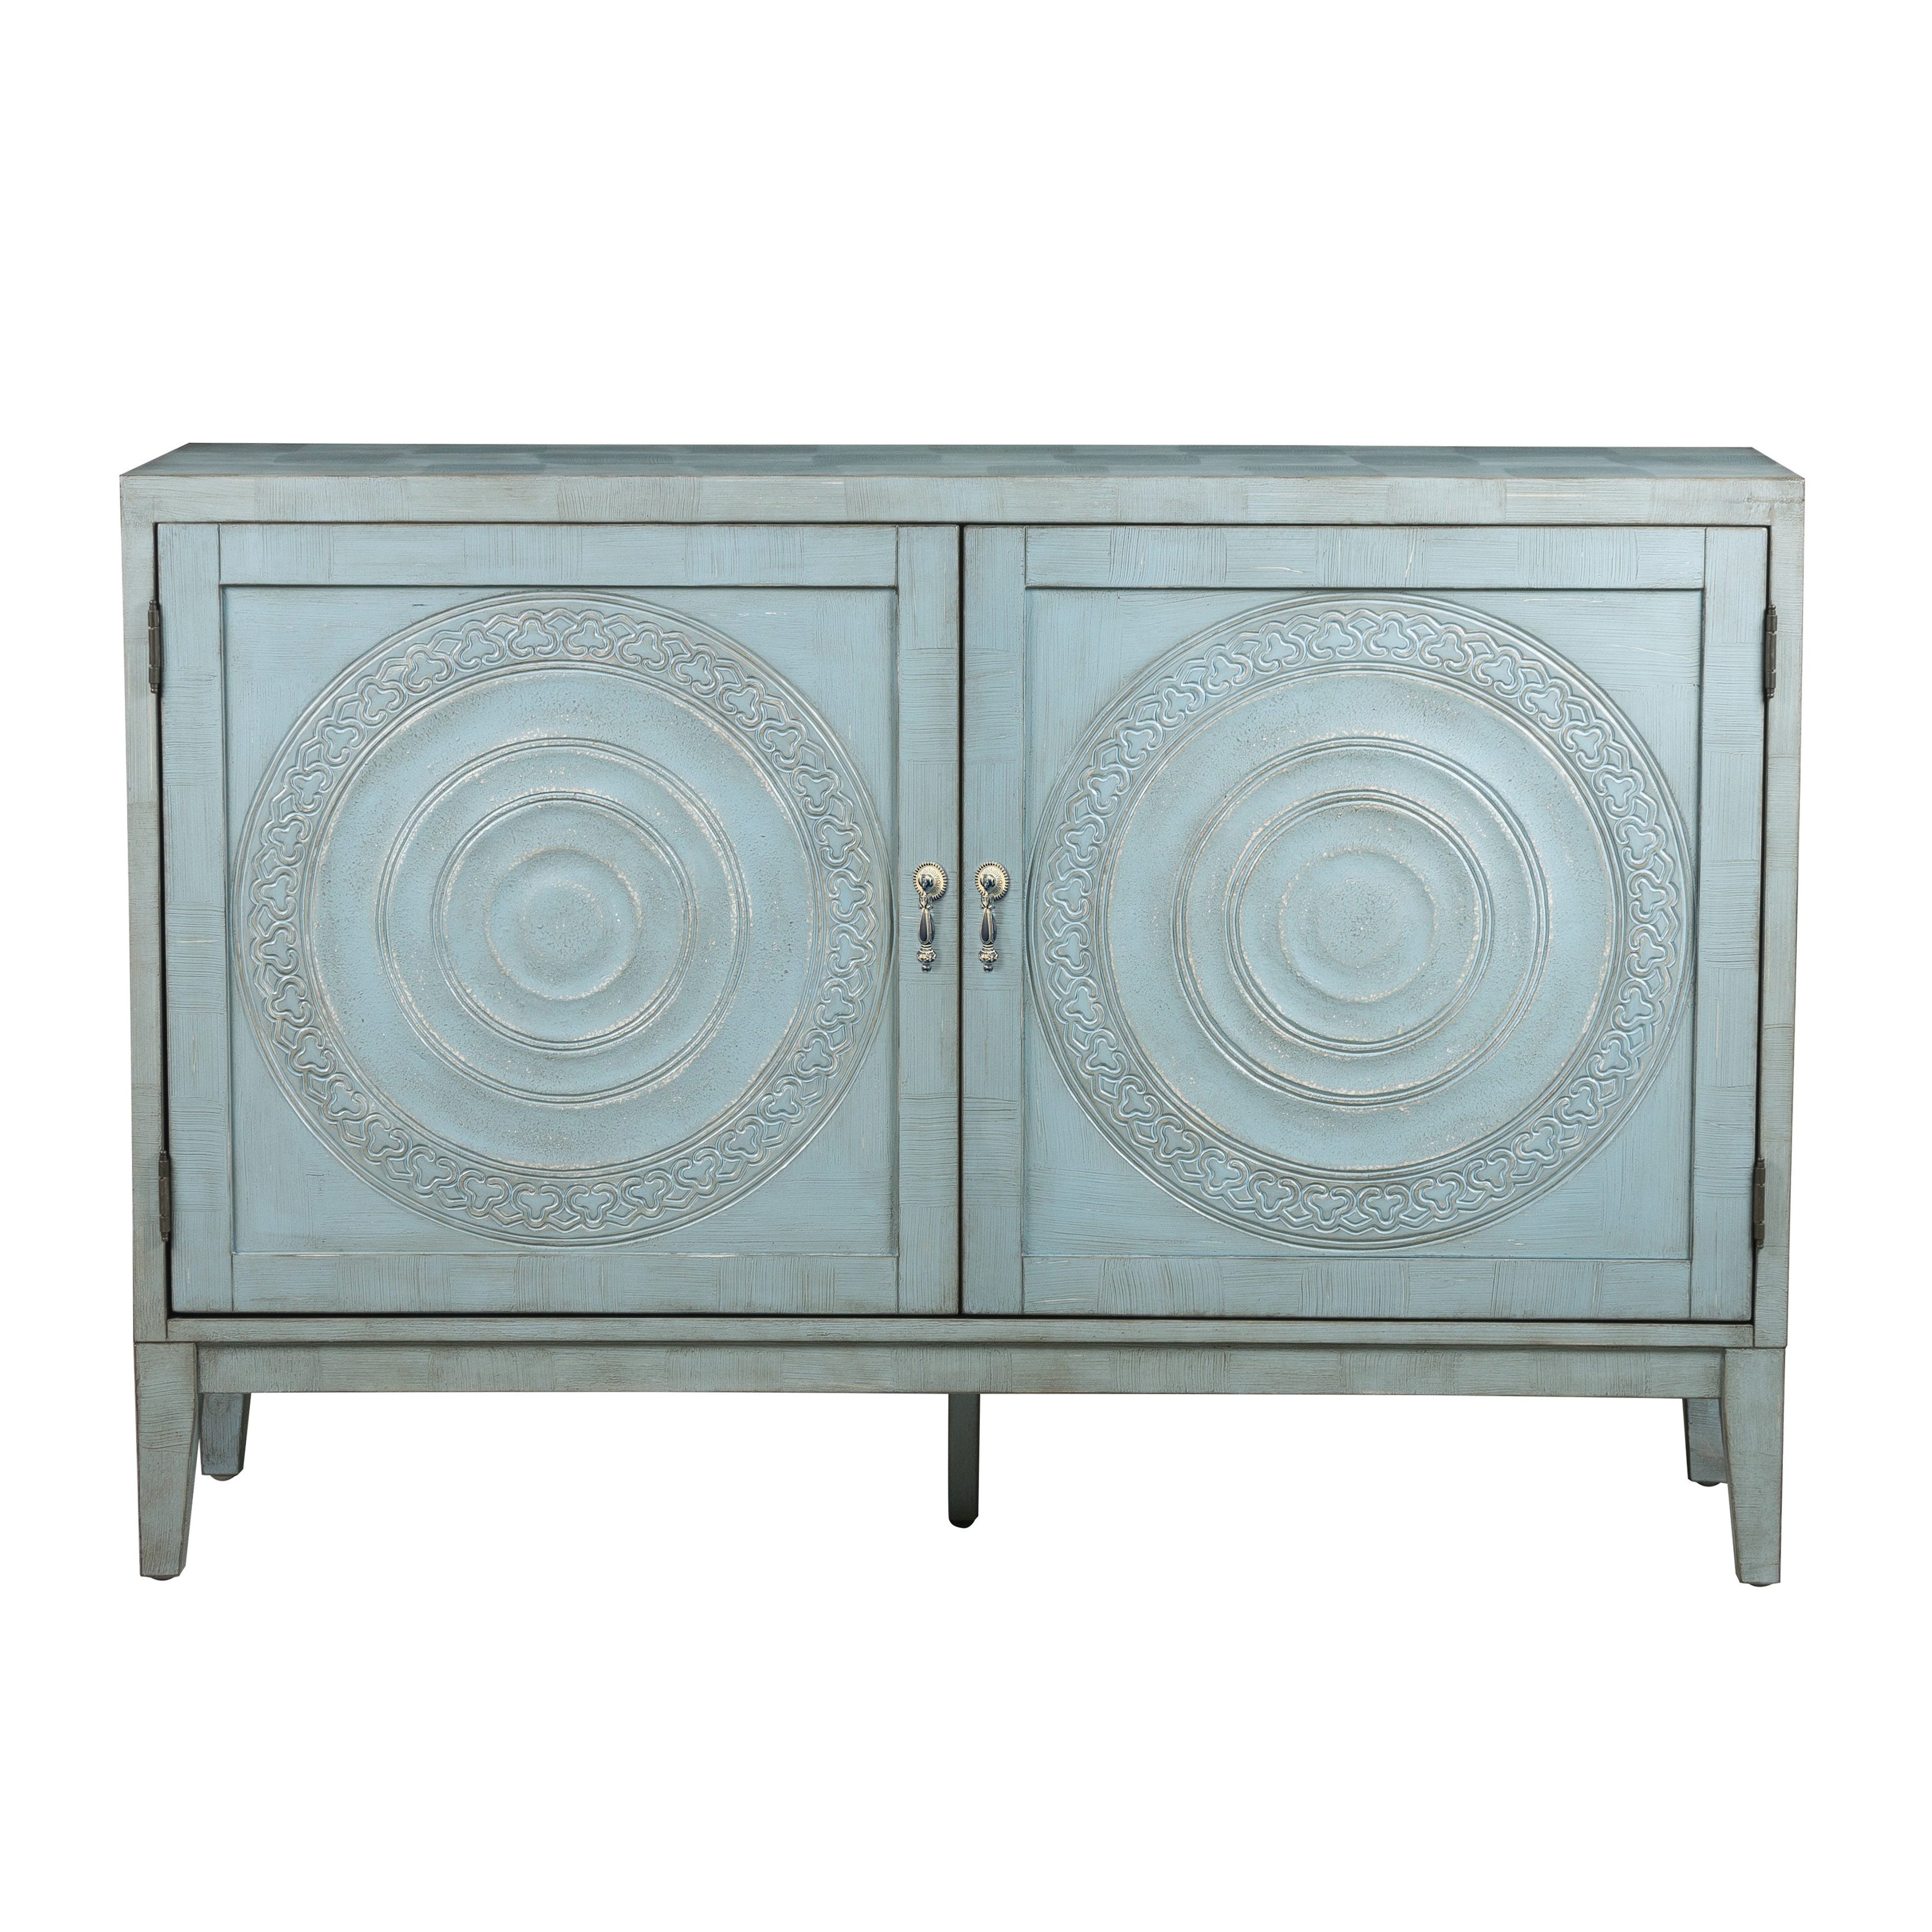 Briane Antique Blue Embossed Credenza Console Regarding Blue Stained Glass Credenzas (View 13 of 20)